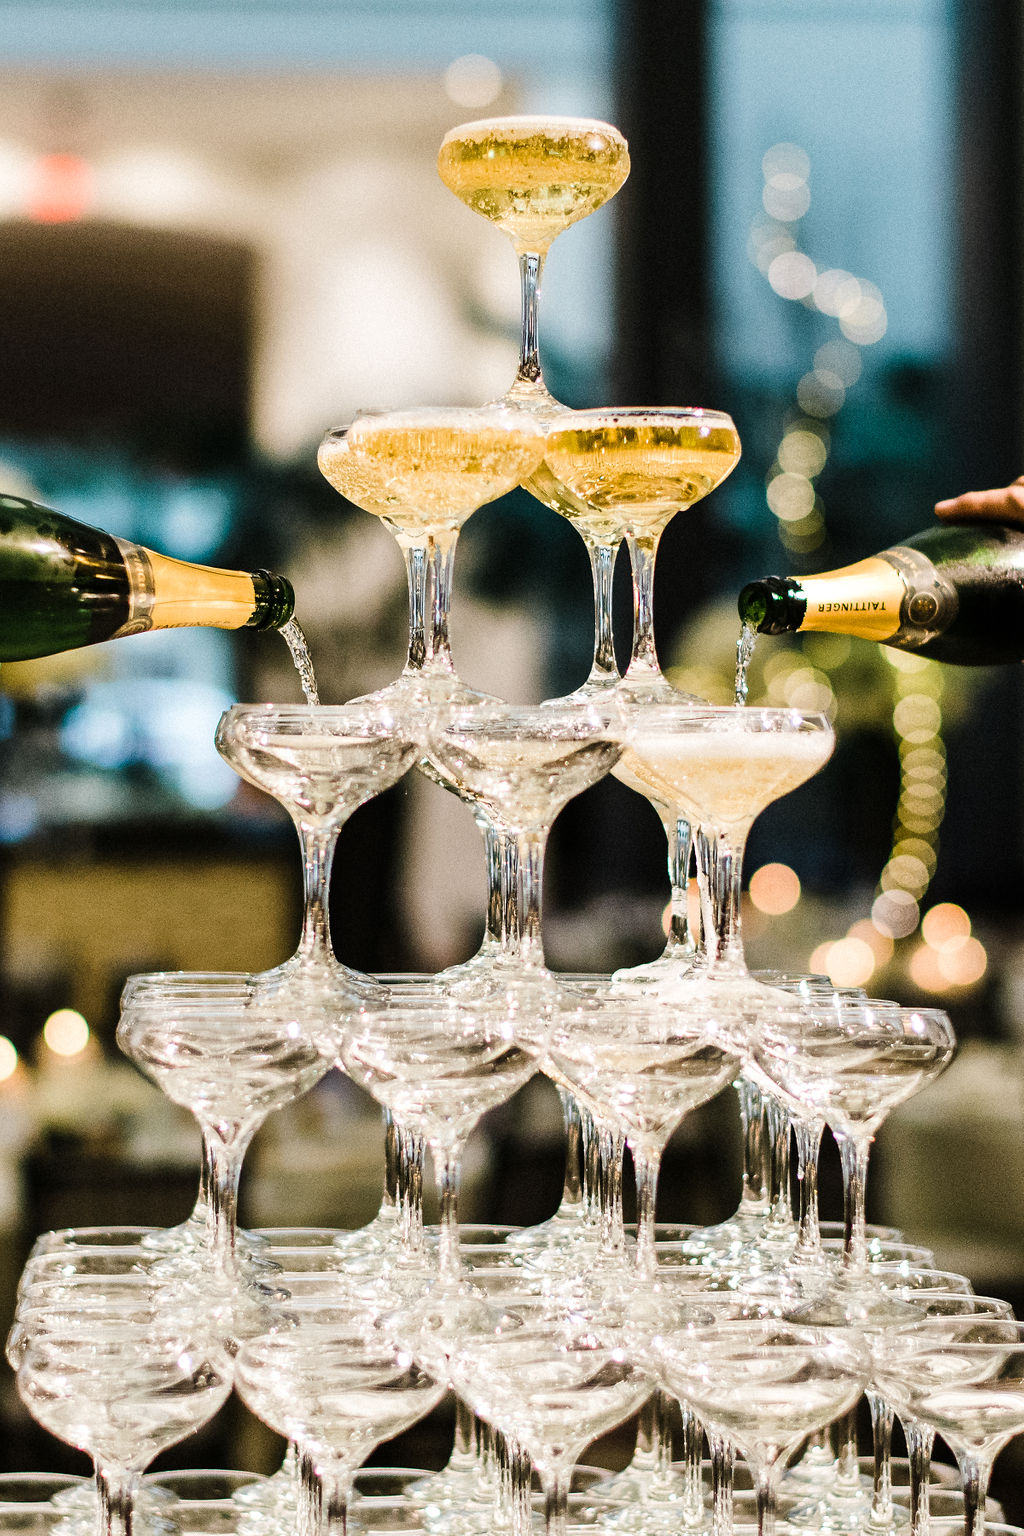 Champagne tour by Porrona & Pina/ The Goodwin Hotel at Melanie & Tyler Anderson's Great Gatsby Themed wedding - Pearl Weddings & Events